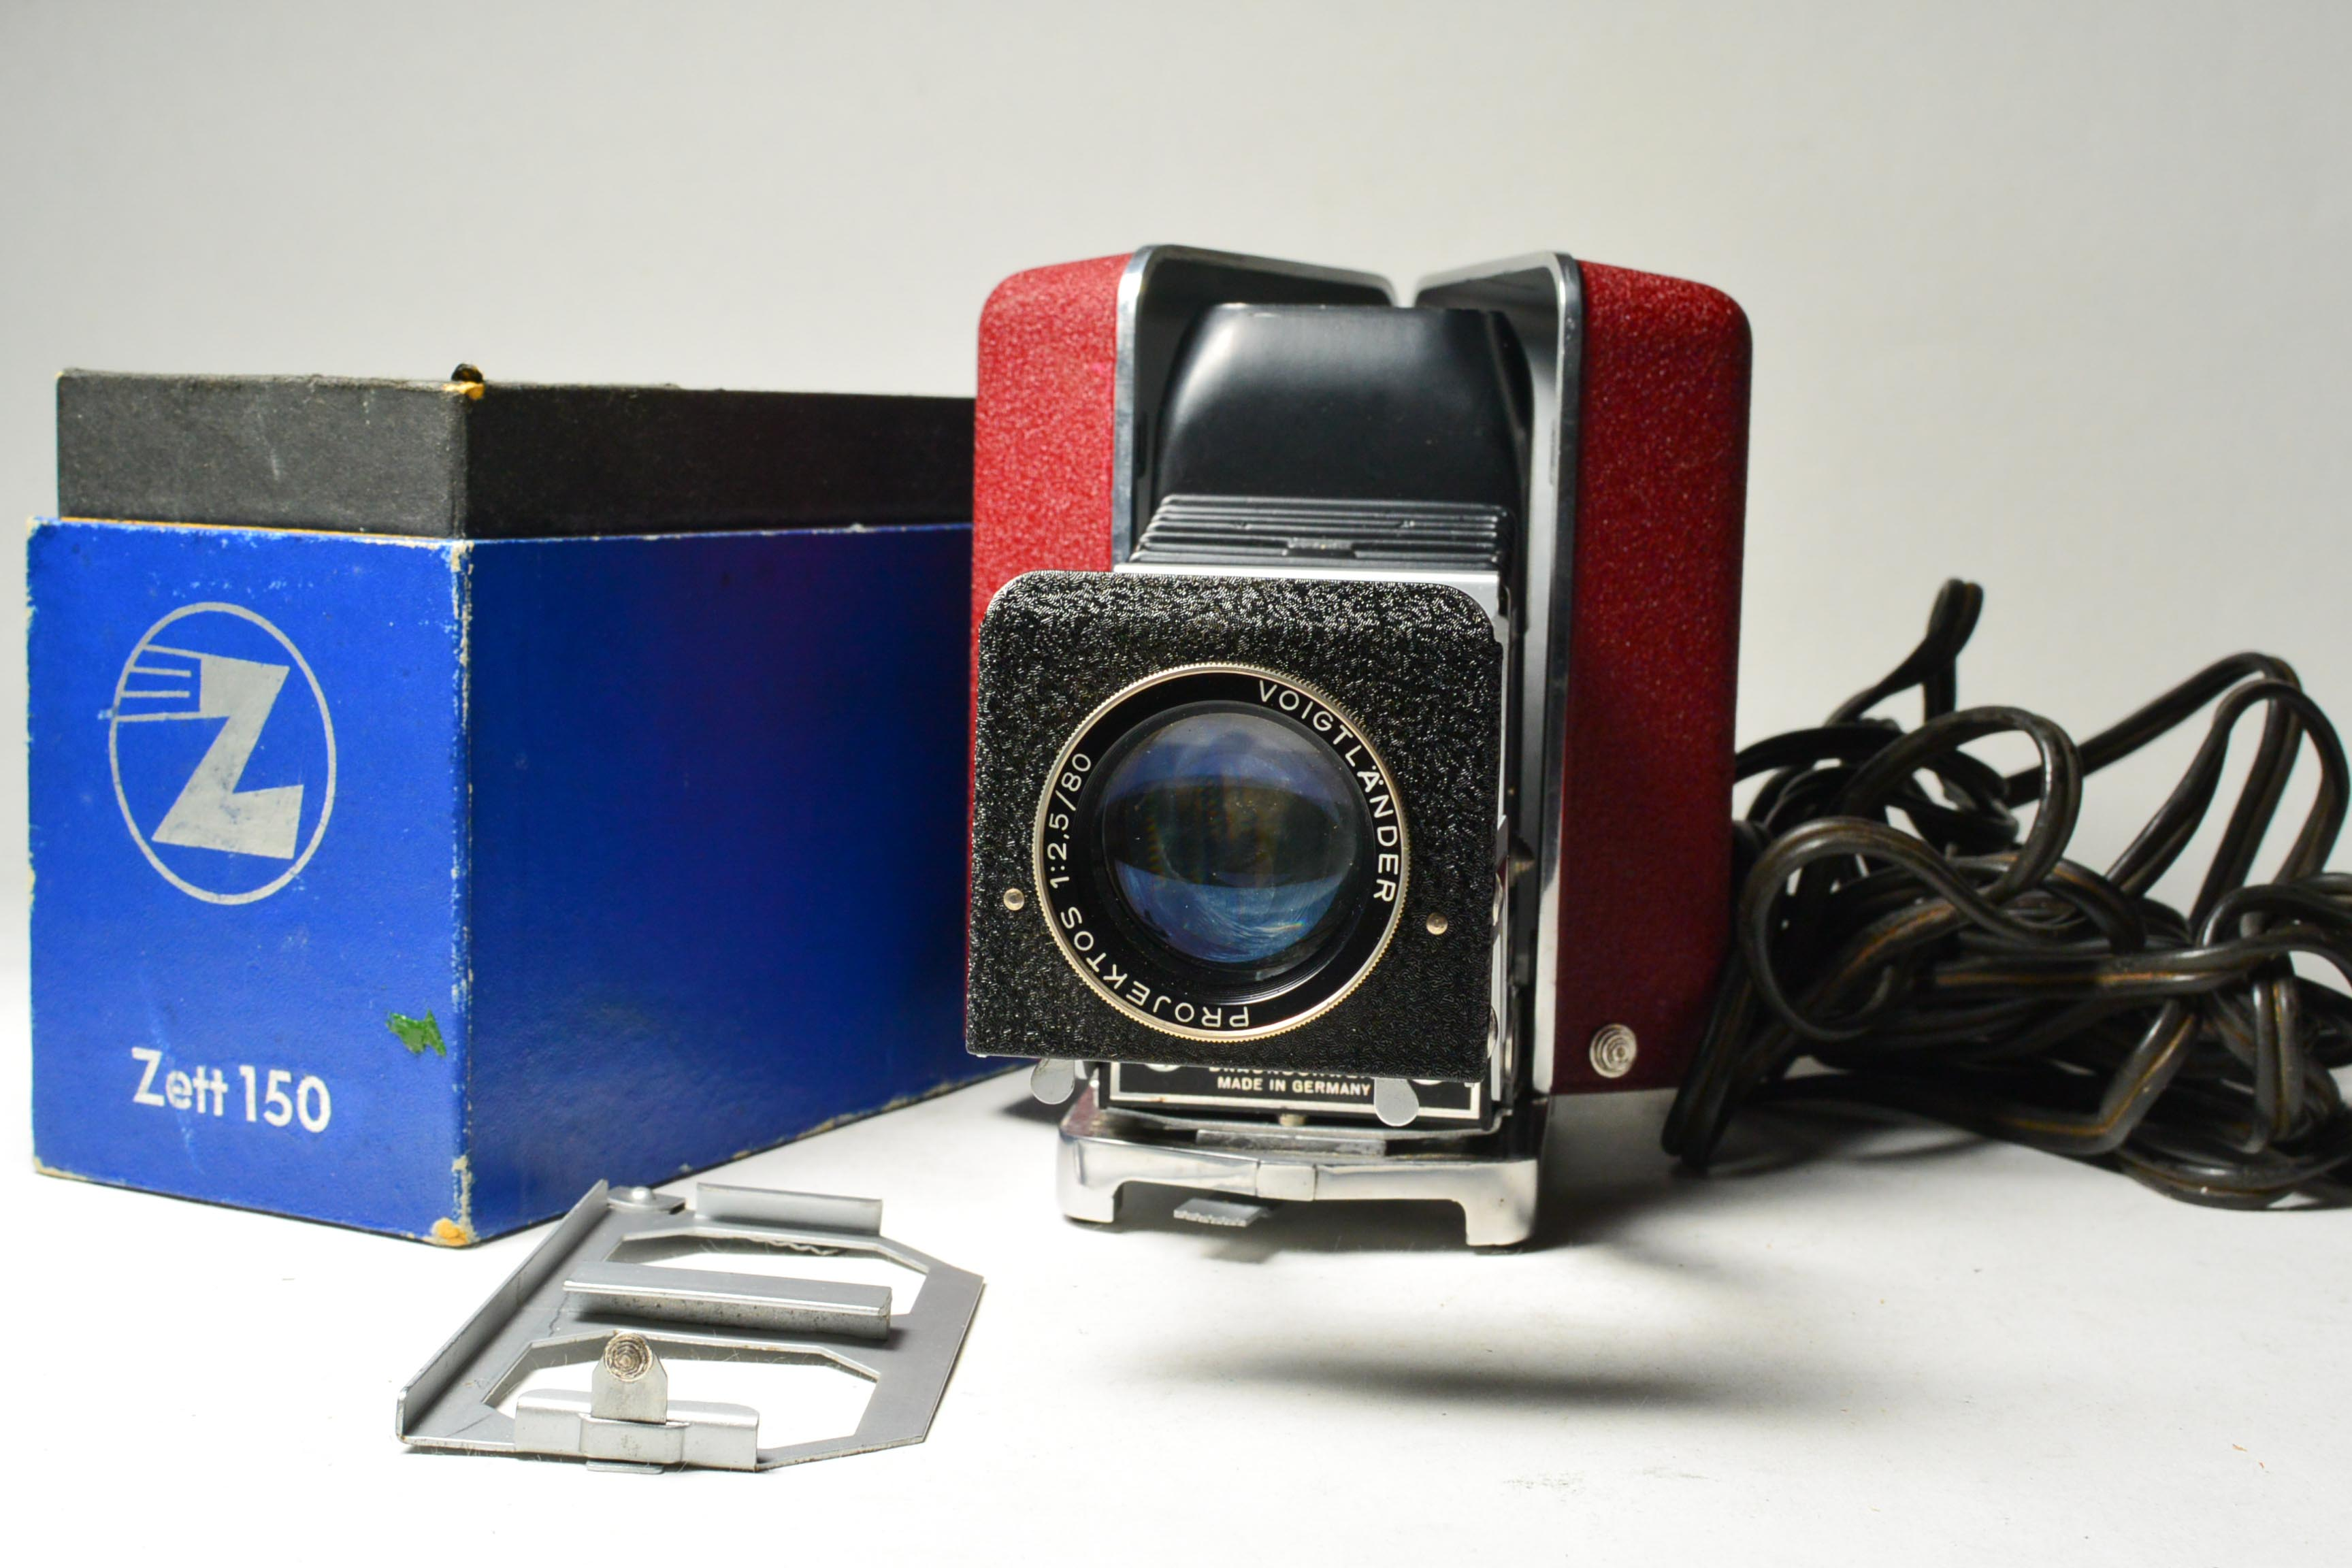 German-made zett 150 mini folding slide projector with a good color of the  lens